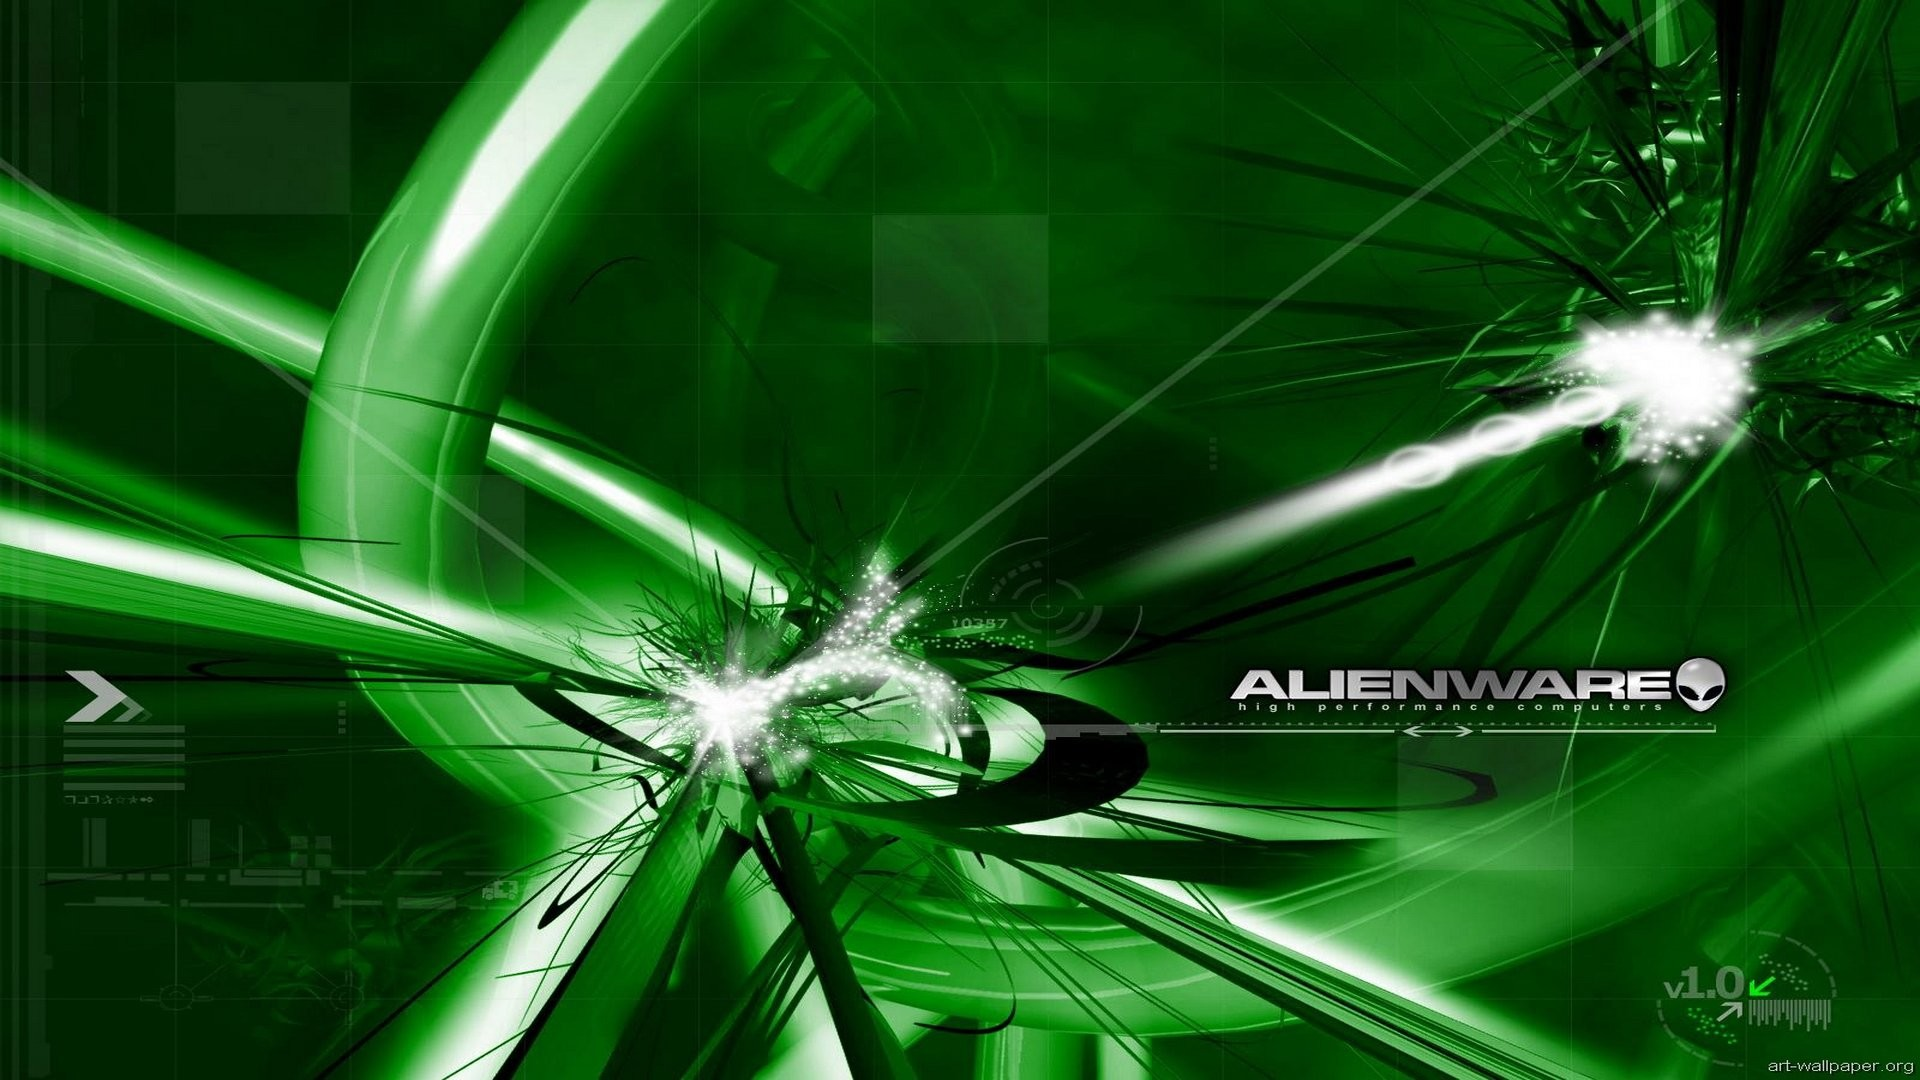 4k alienware wallpaper 72 images - Desktop wallpaper 4k ...